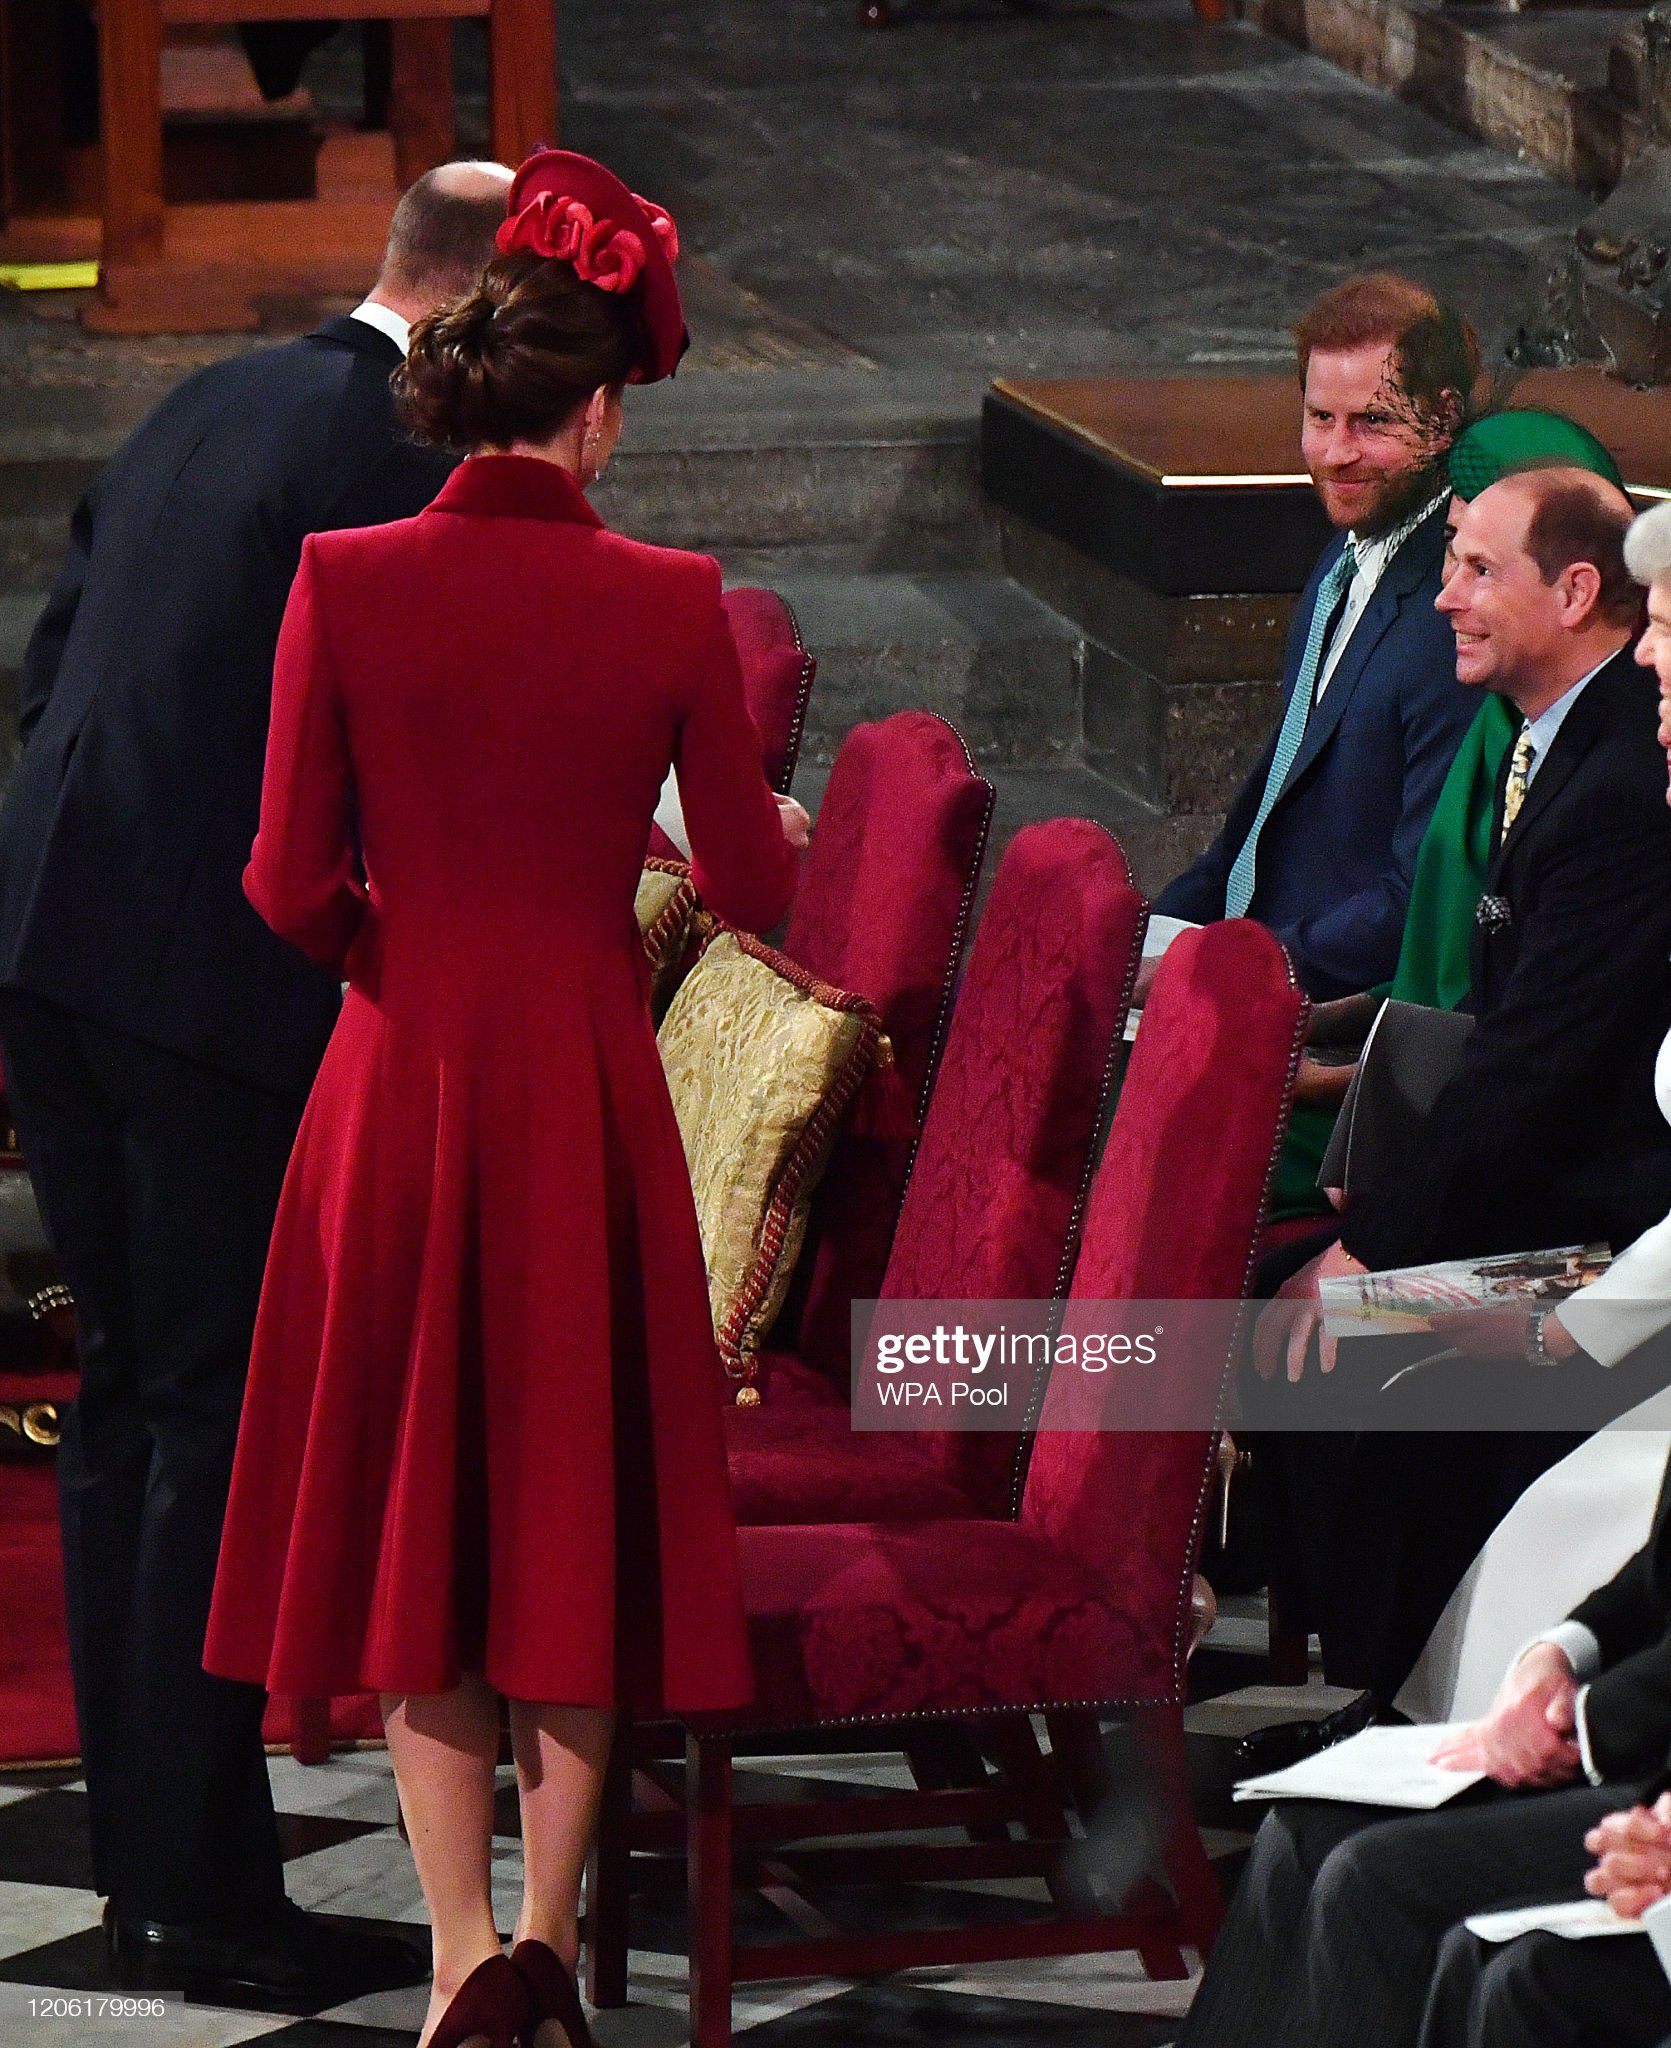 https://media.gettyimages.com/photos/prince-william-duke-of-cambridge-catherine-duchess-of-cambridge-of-picture-id1206179996?s=2048x2048